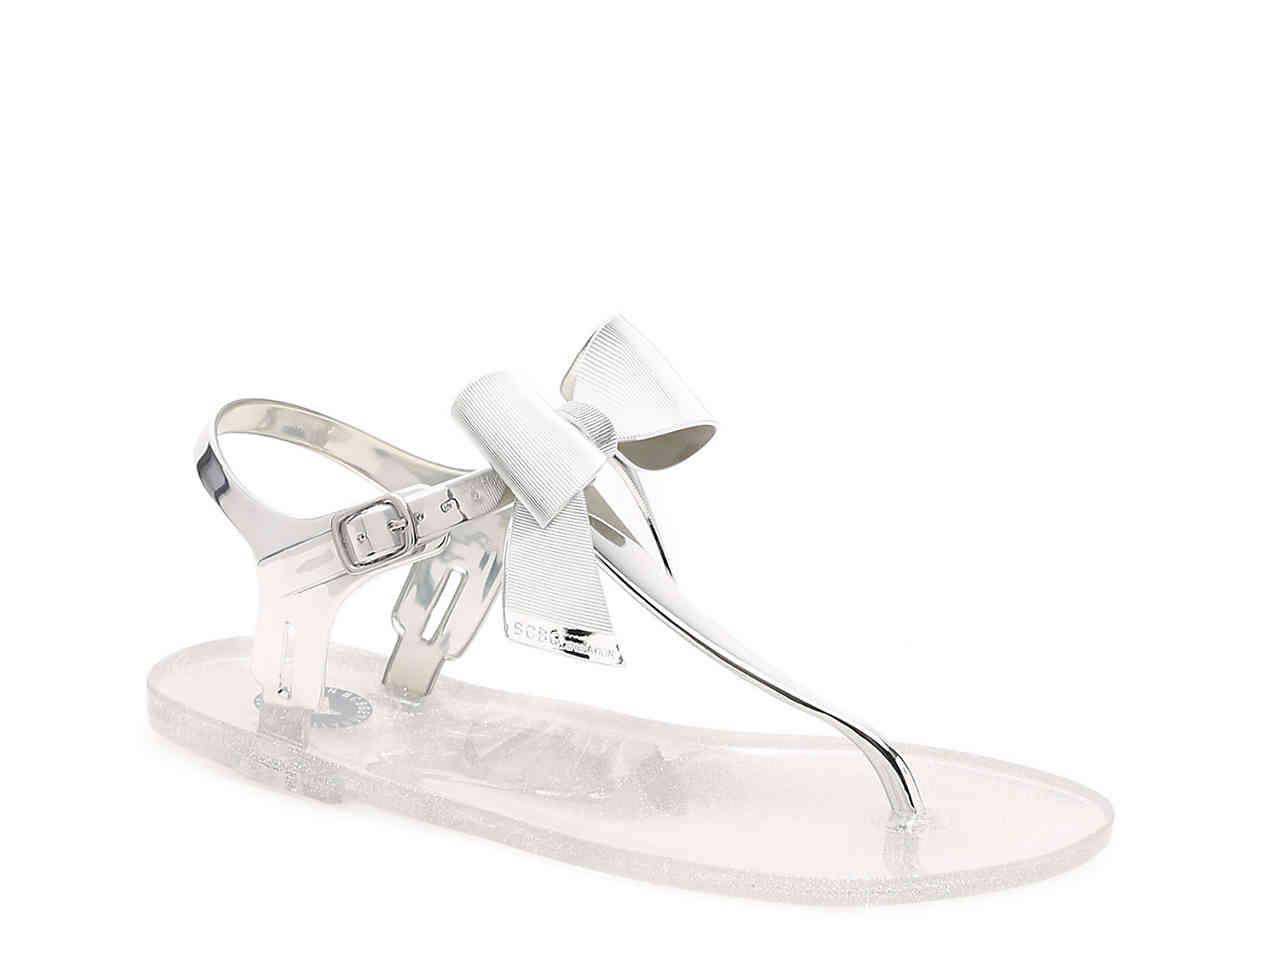 be686c8d26e2 Lyst - BCBGeneration Beena Jelly Sandal in Metallic